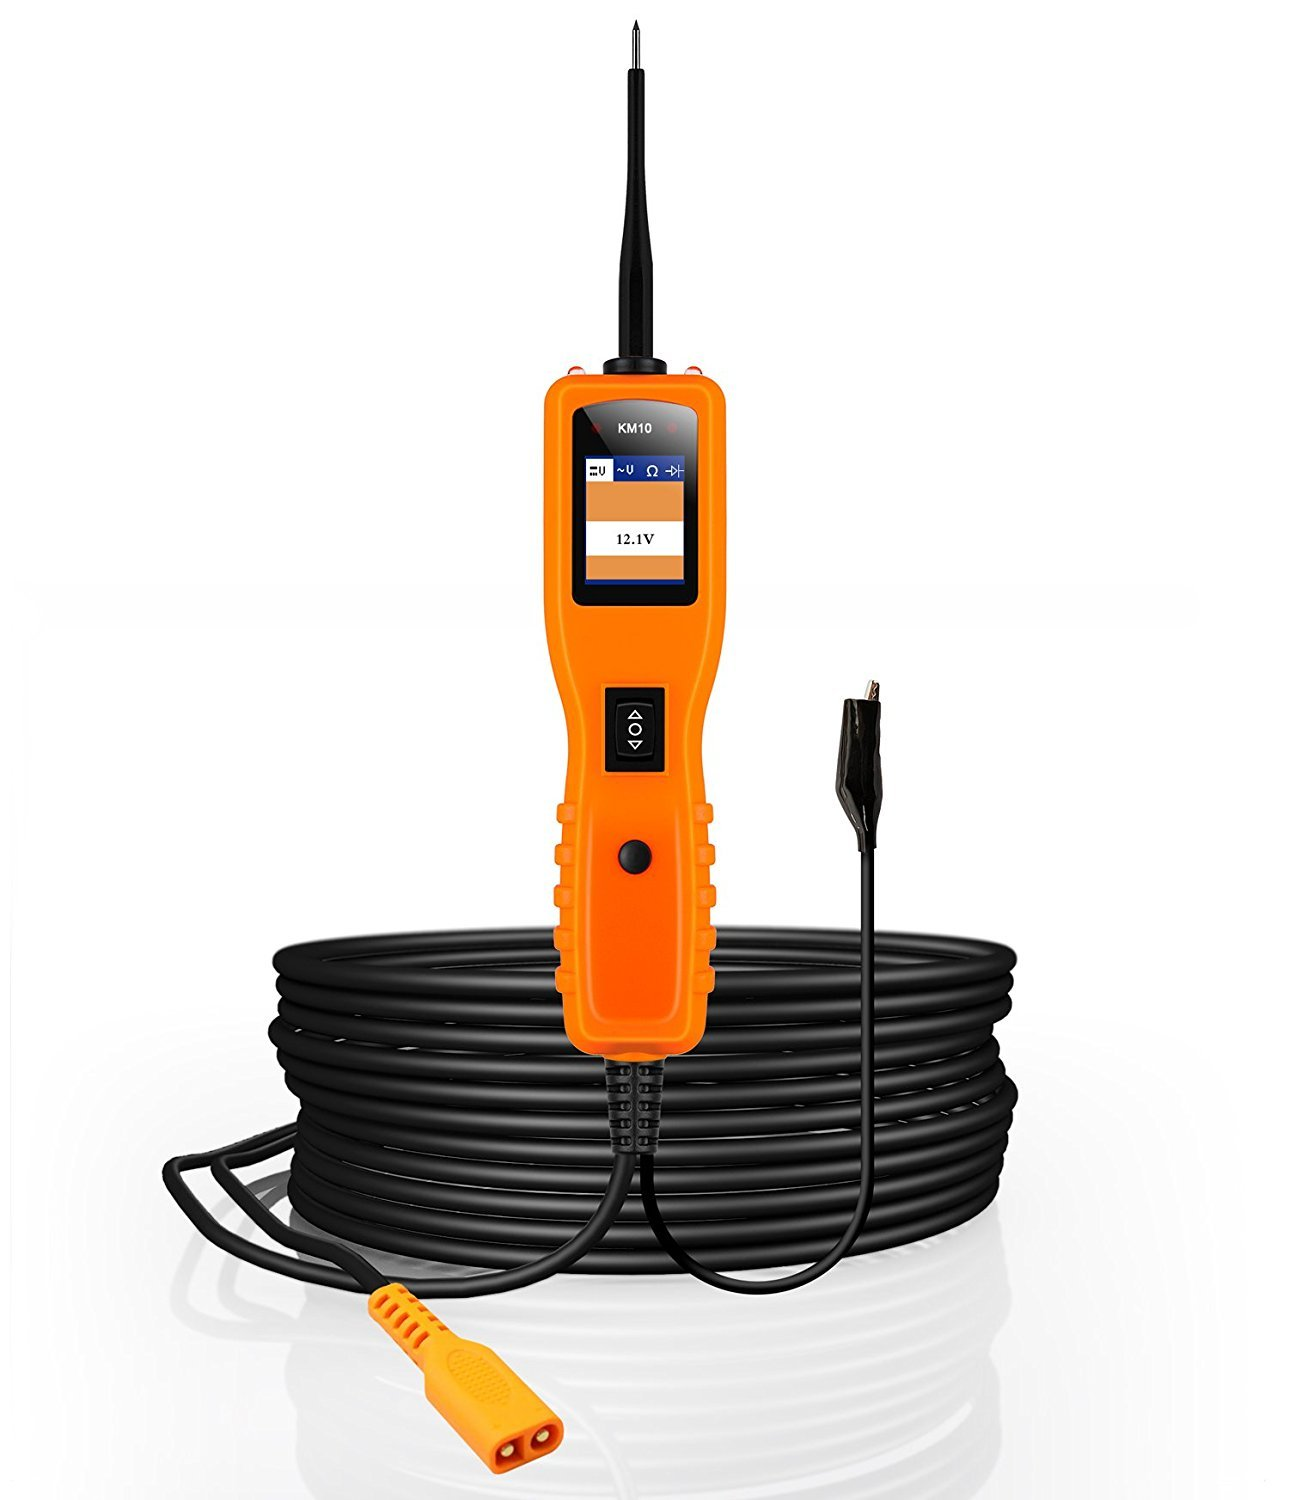 Kzyee Km10 Power Circuit Probe Kit Automotive Tester With How To Measure In A Auto Electrical System Testing Functions